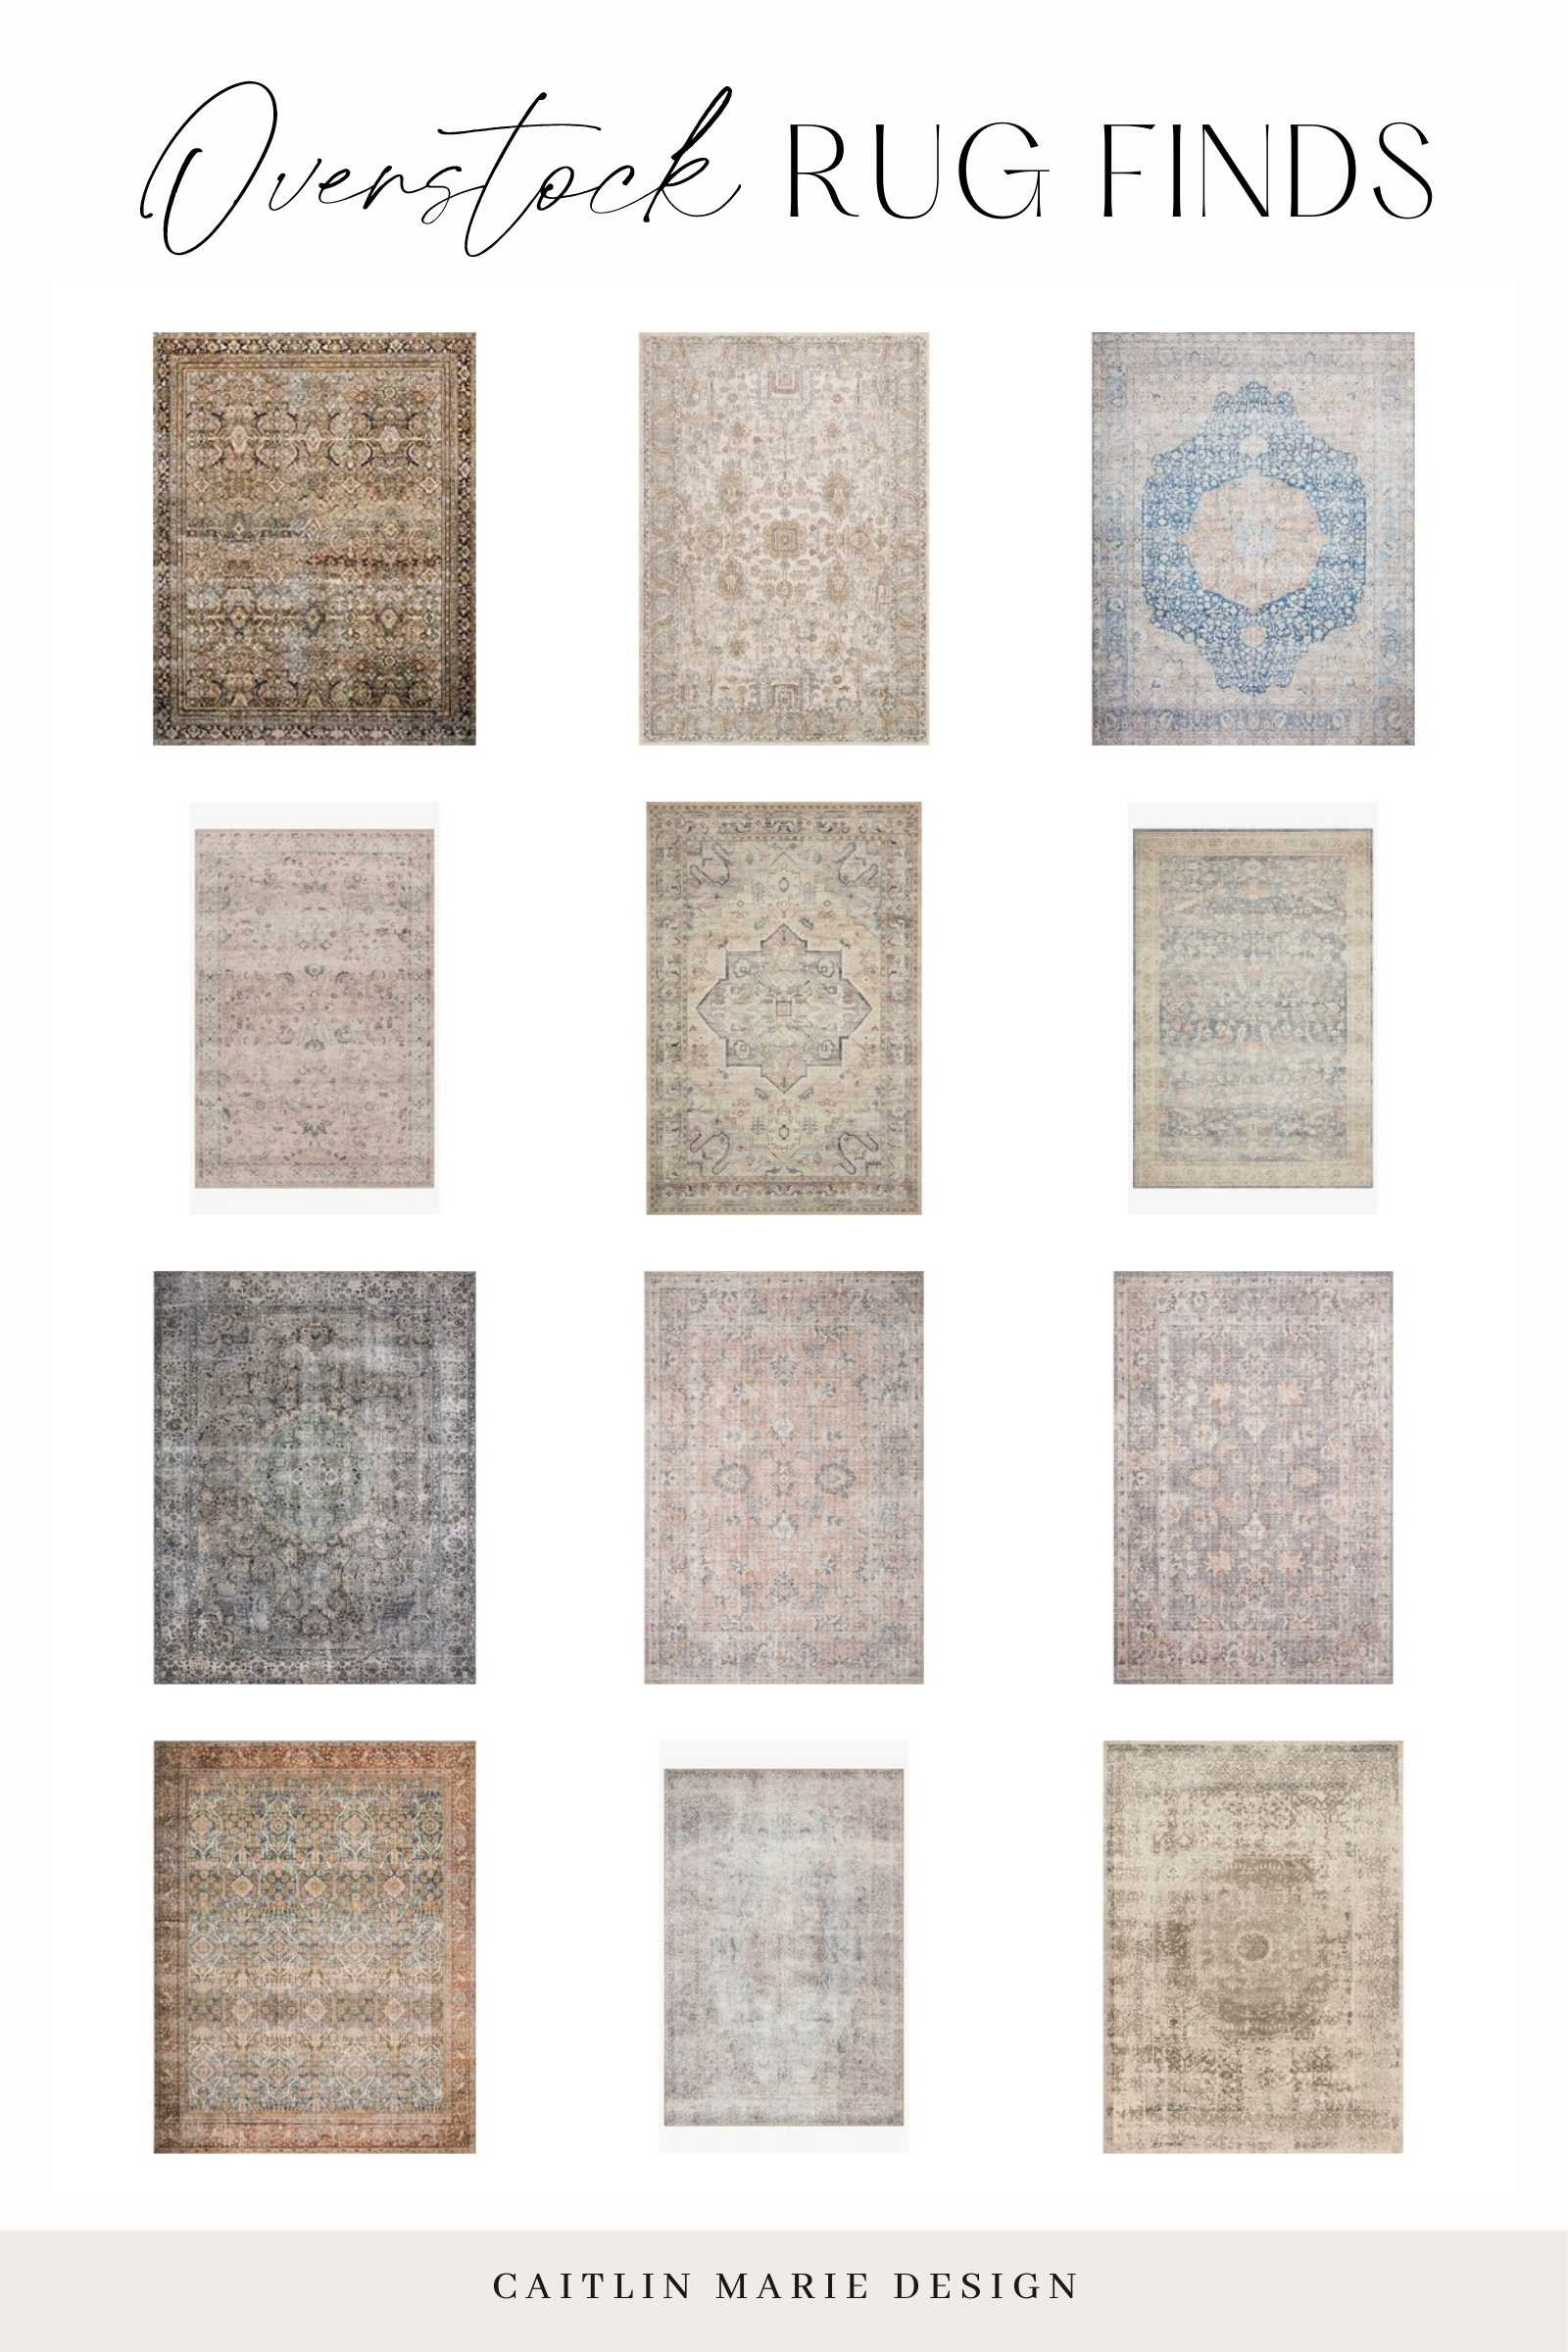 Affordable Area Rugs Roundup - Overstock Rug Finds collage